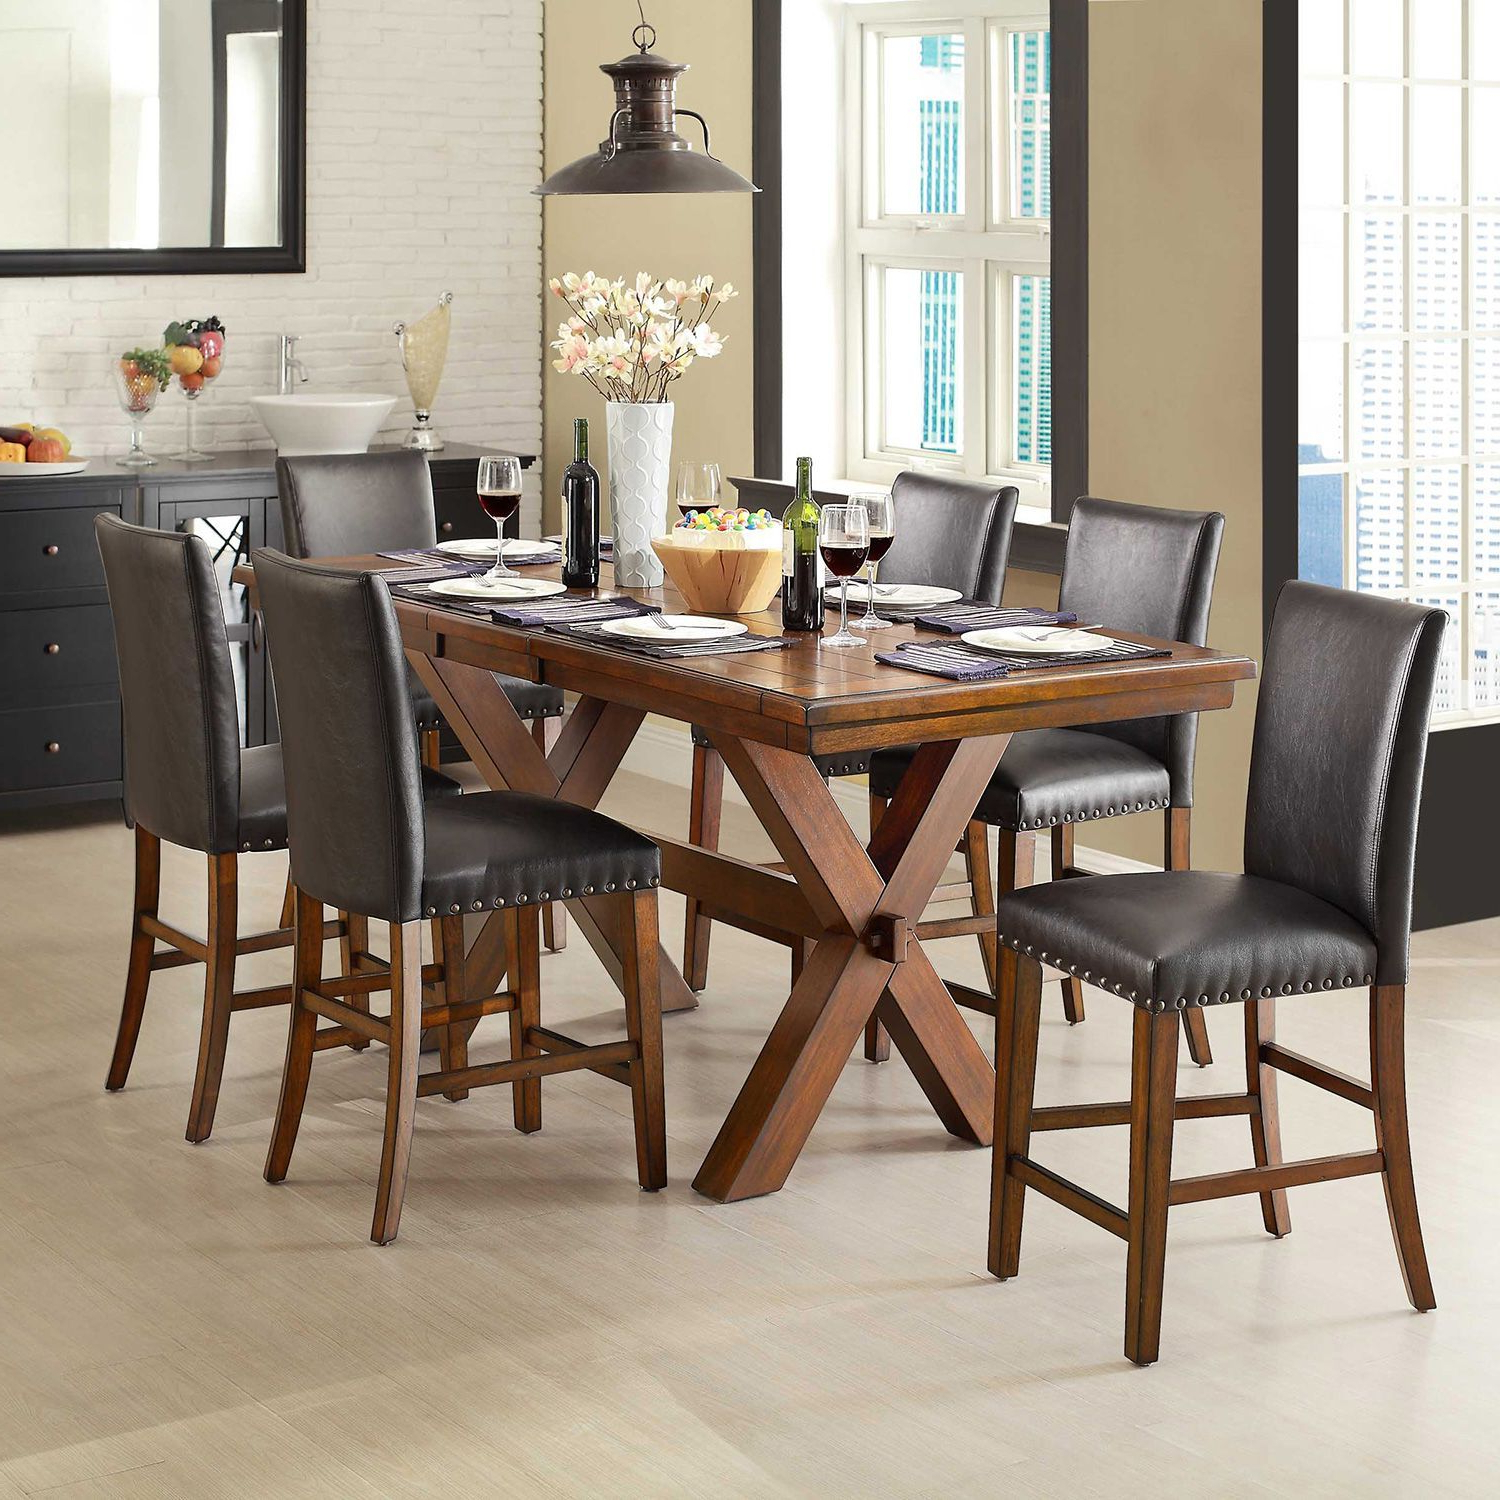 Dining Intended For Winsted 4 Piece Counter Height Dining Sets (View 16 of 25)